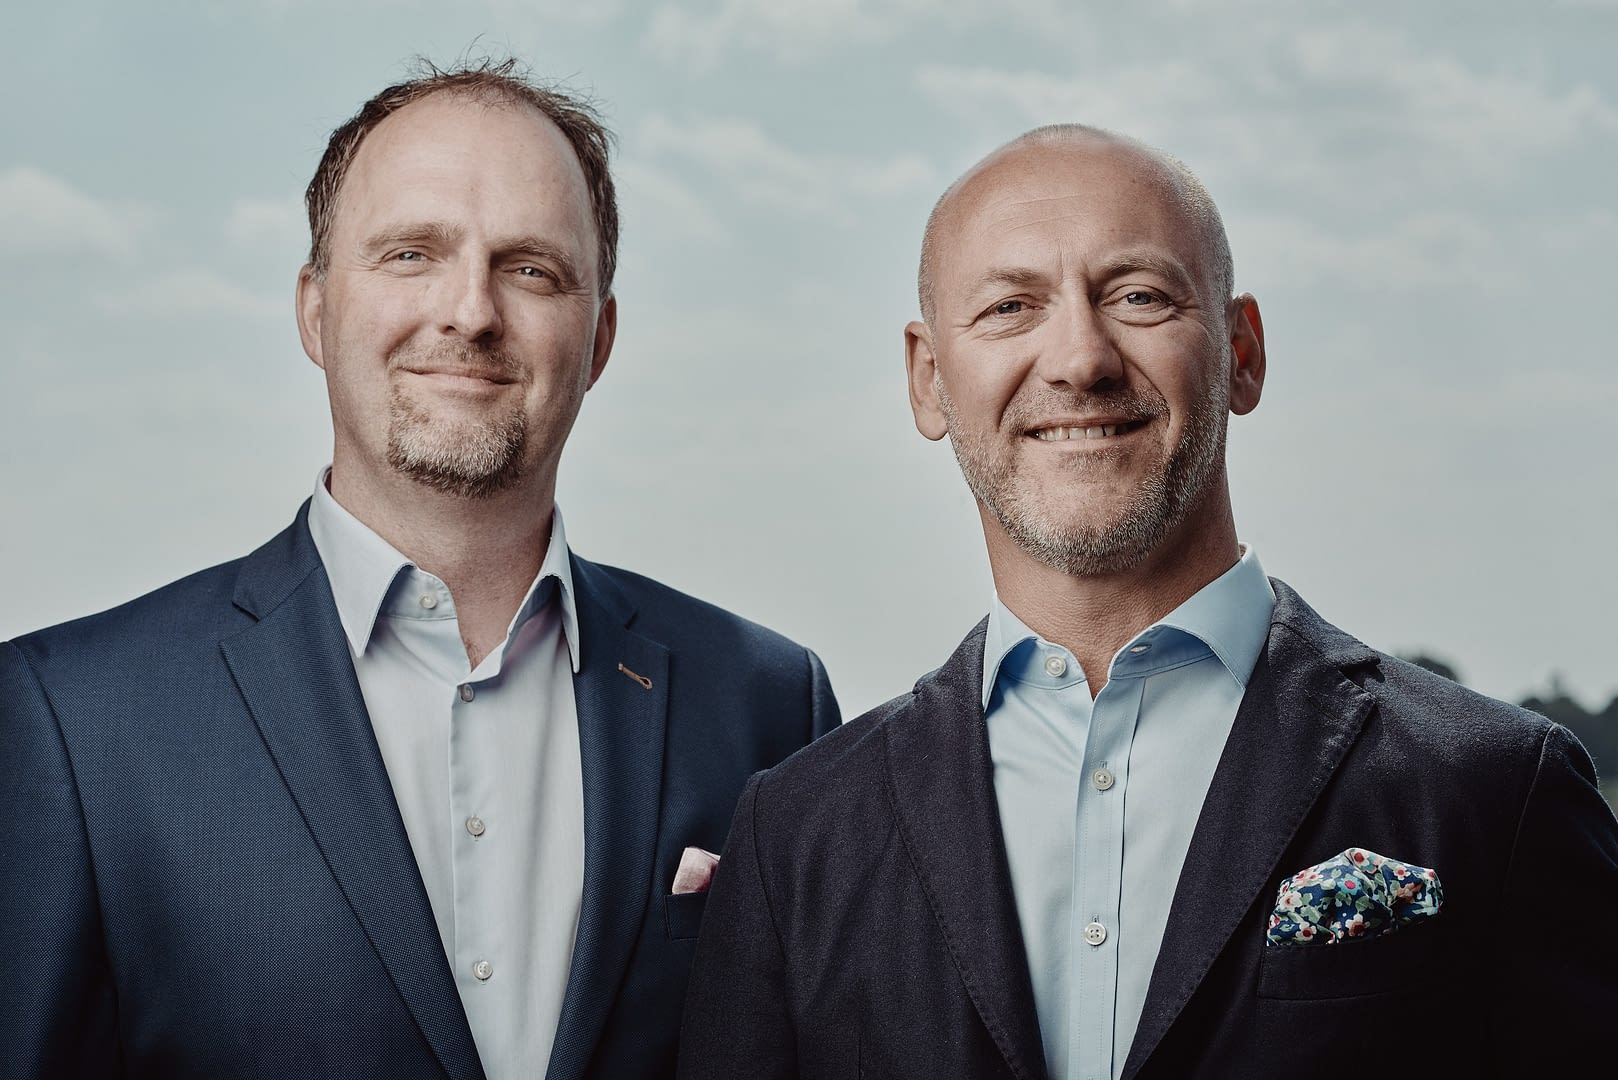 Dw Partner business portrait 2019 13